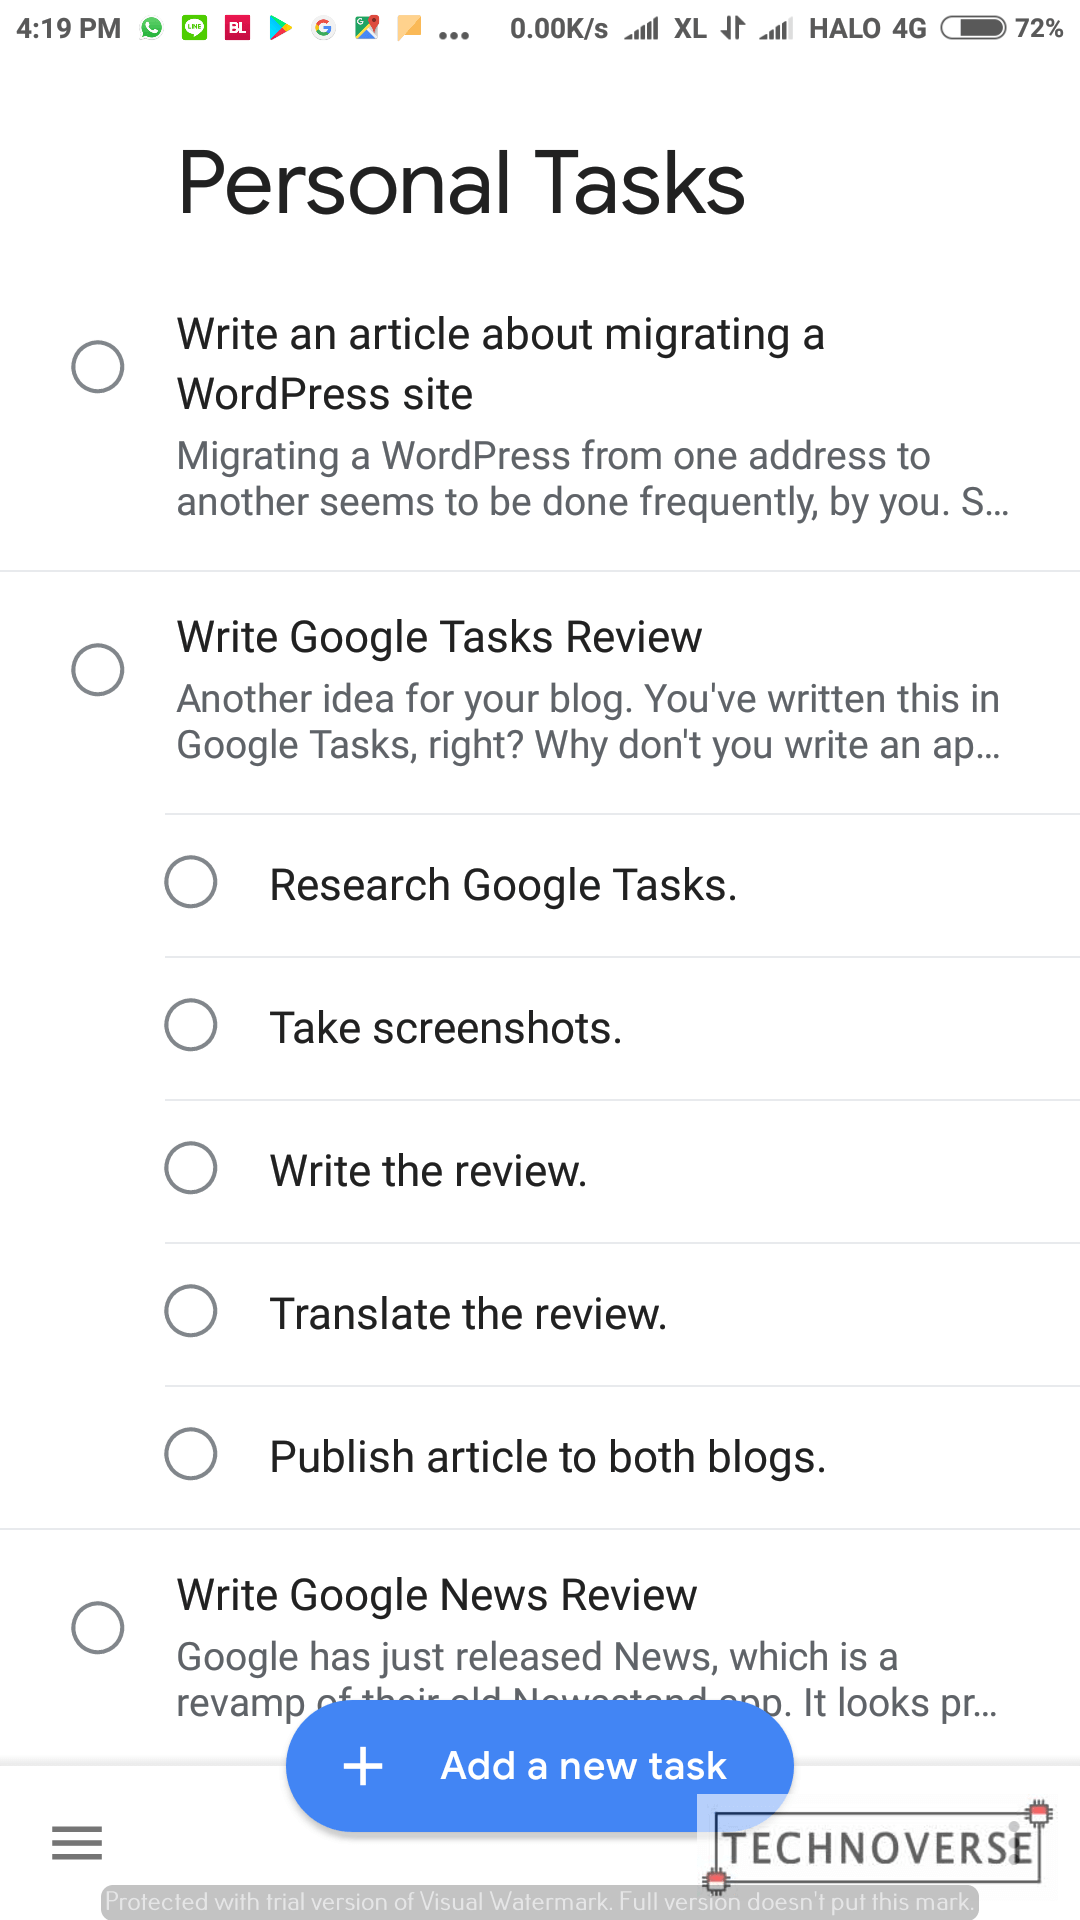 Google Tasks Review - Daftar Tugas